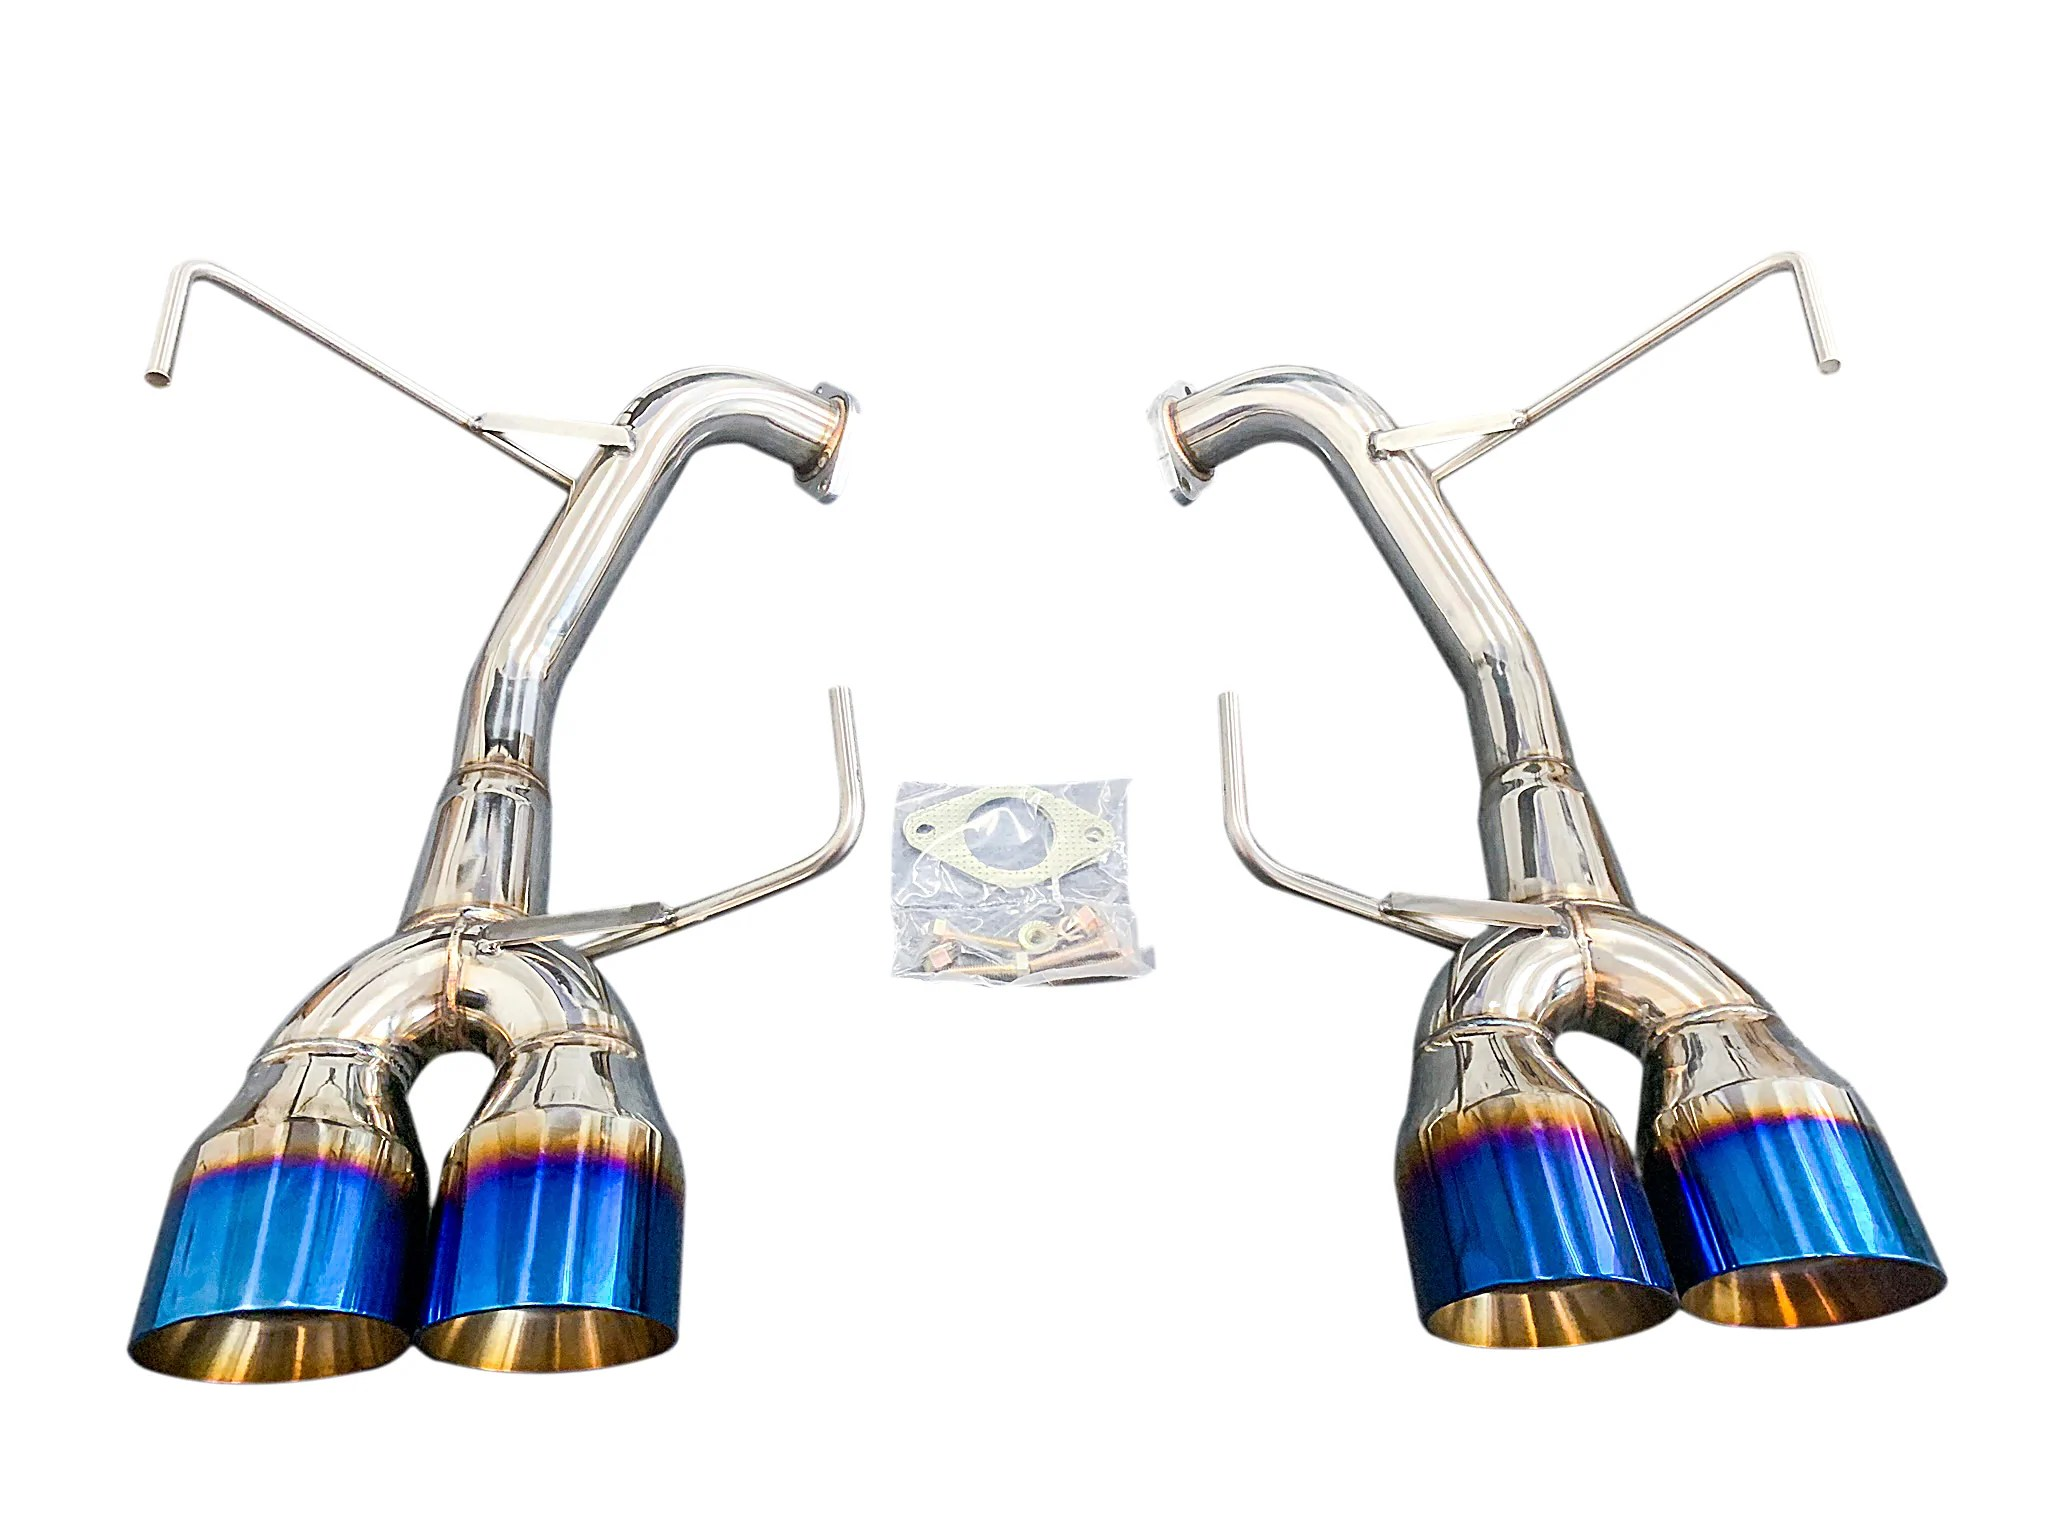 cnt racing v3 muffler delete axleback quad tip exhaust systems blue tips 4 inch tips for 2015 2019 wrx 2015 2018 sti